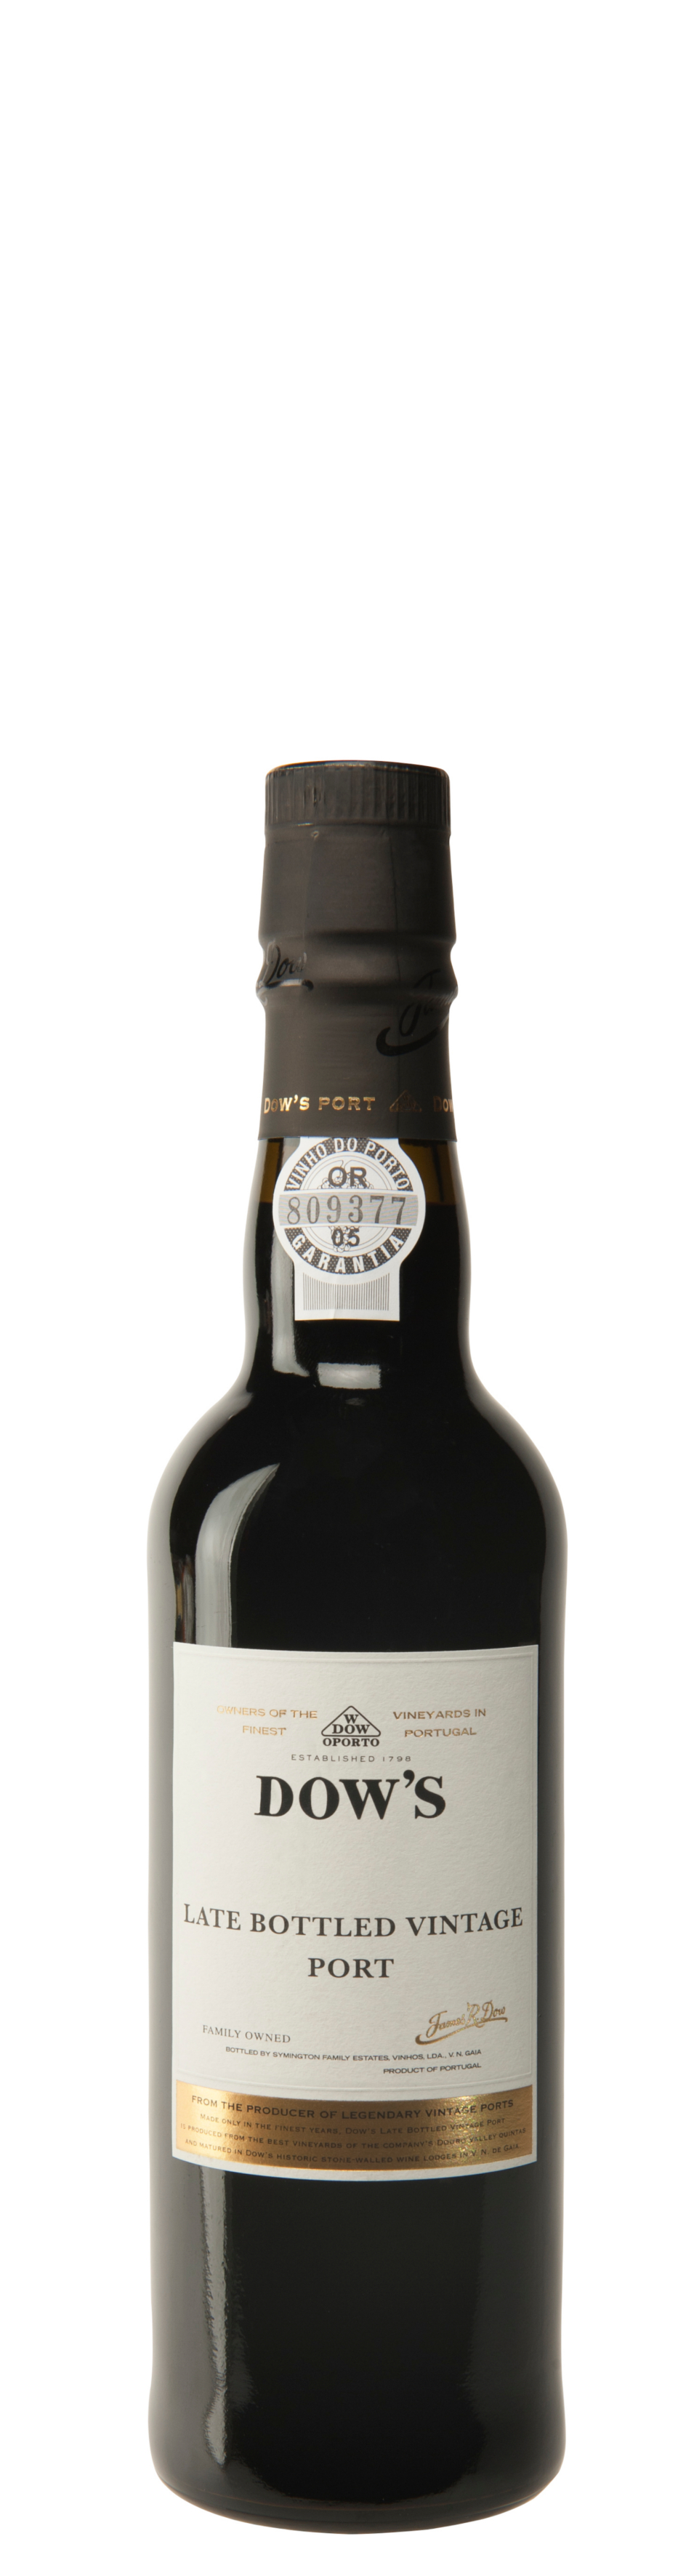 Dow's late bottle vintage port 0,375l